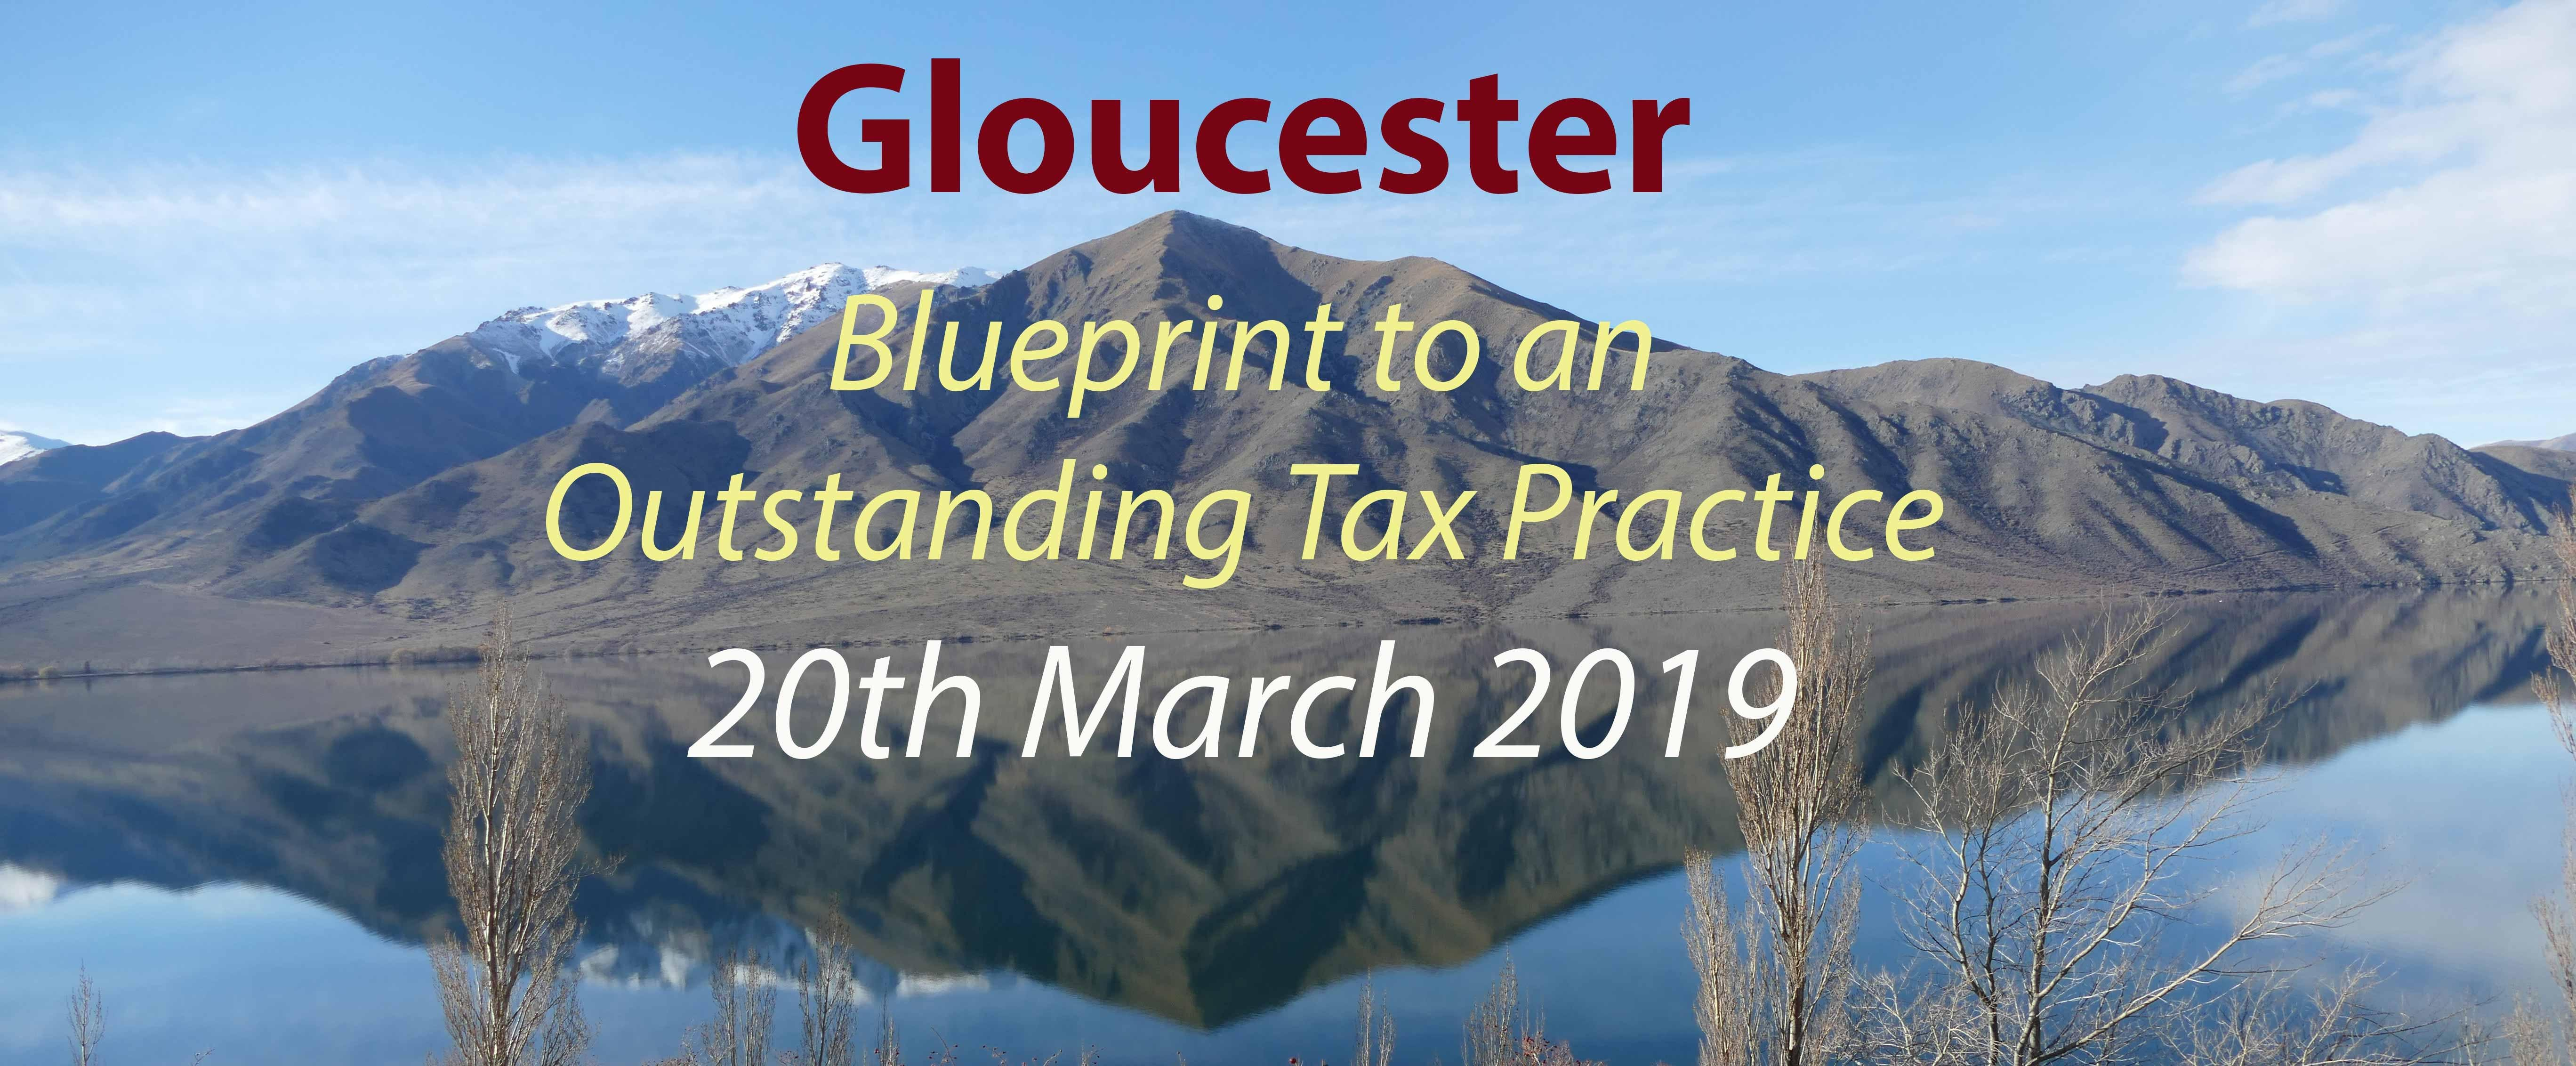 BluePrint to an Outstanding Tax Practice - Gl